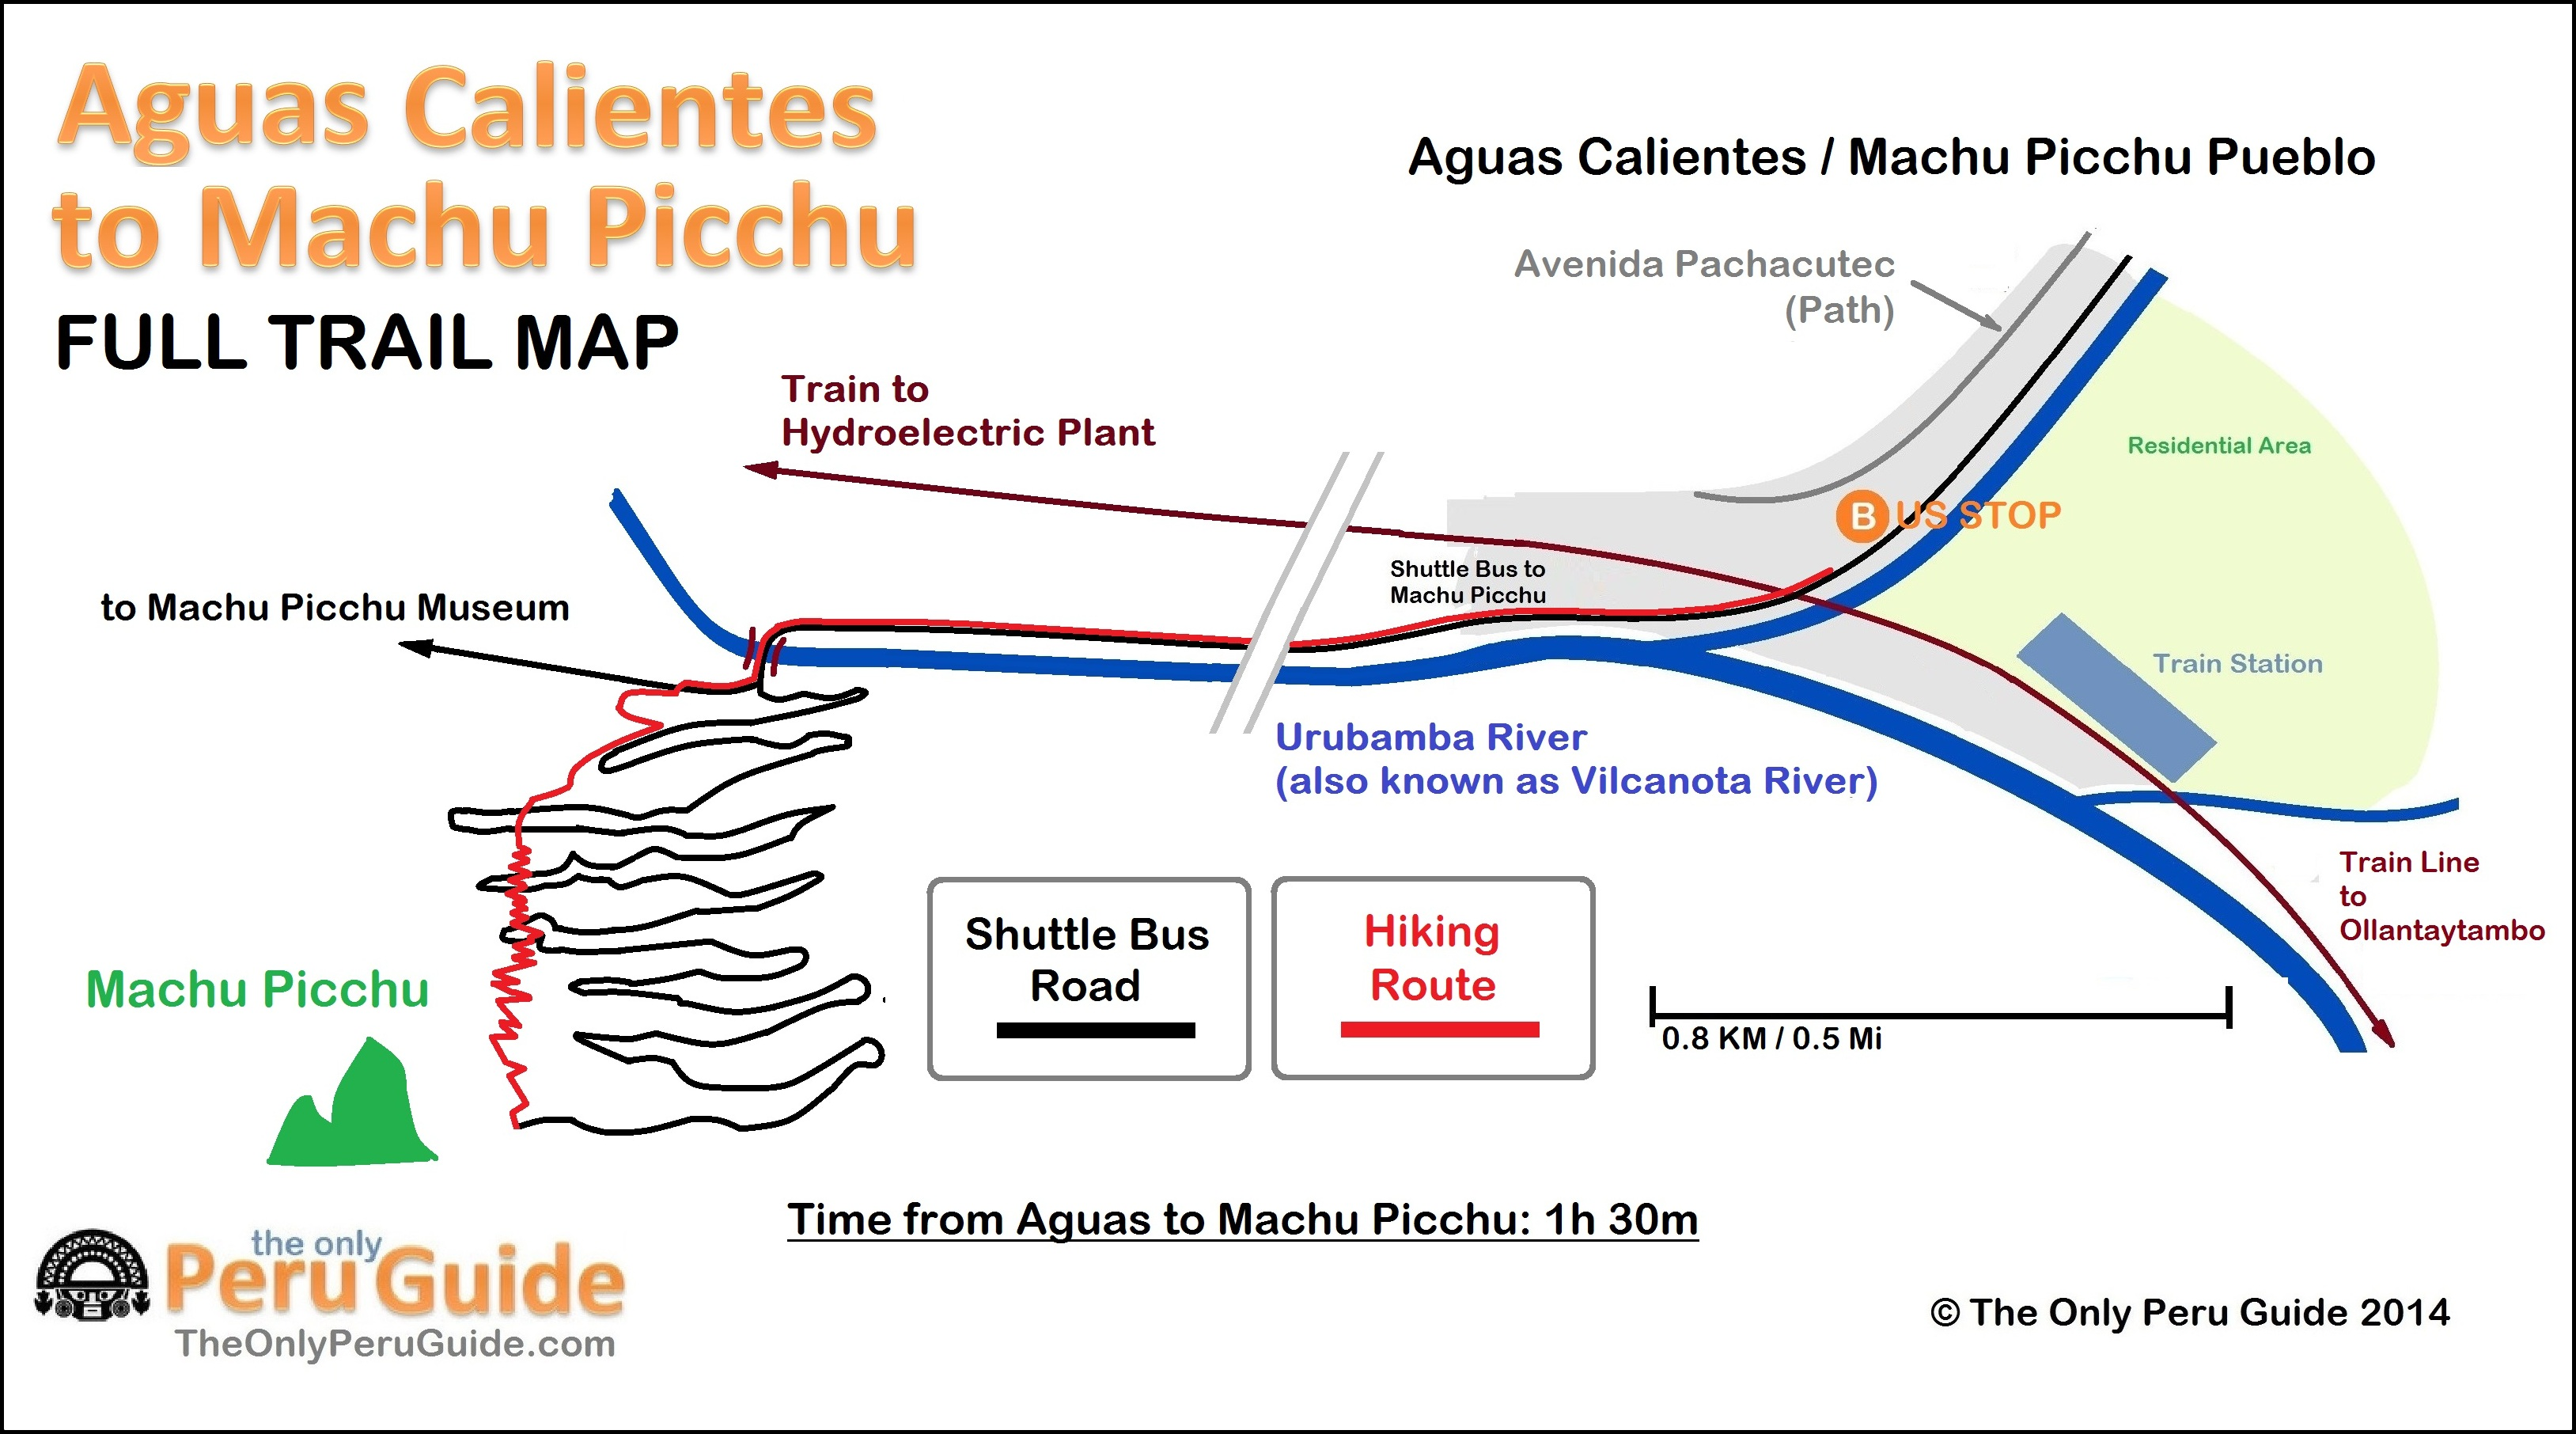 Map of hike from Aguas Calientes to Machu Picchu